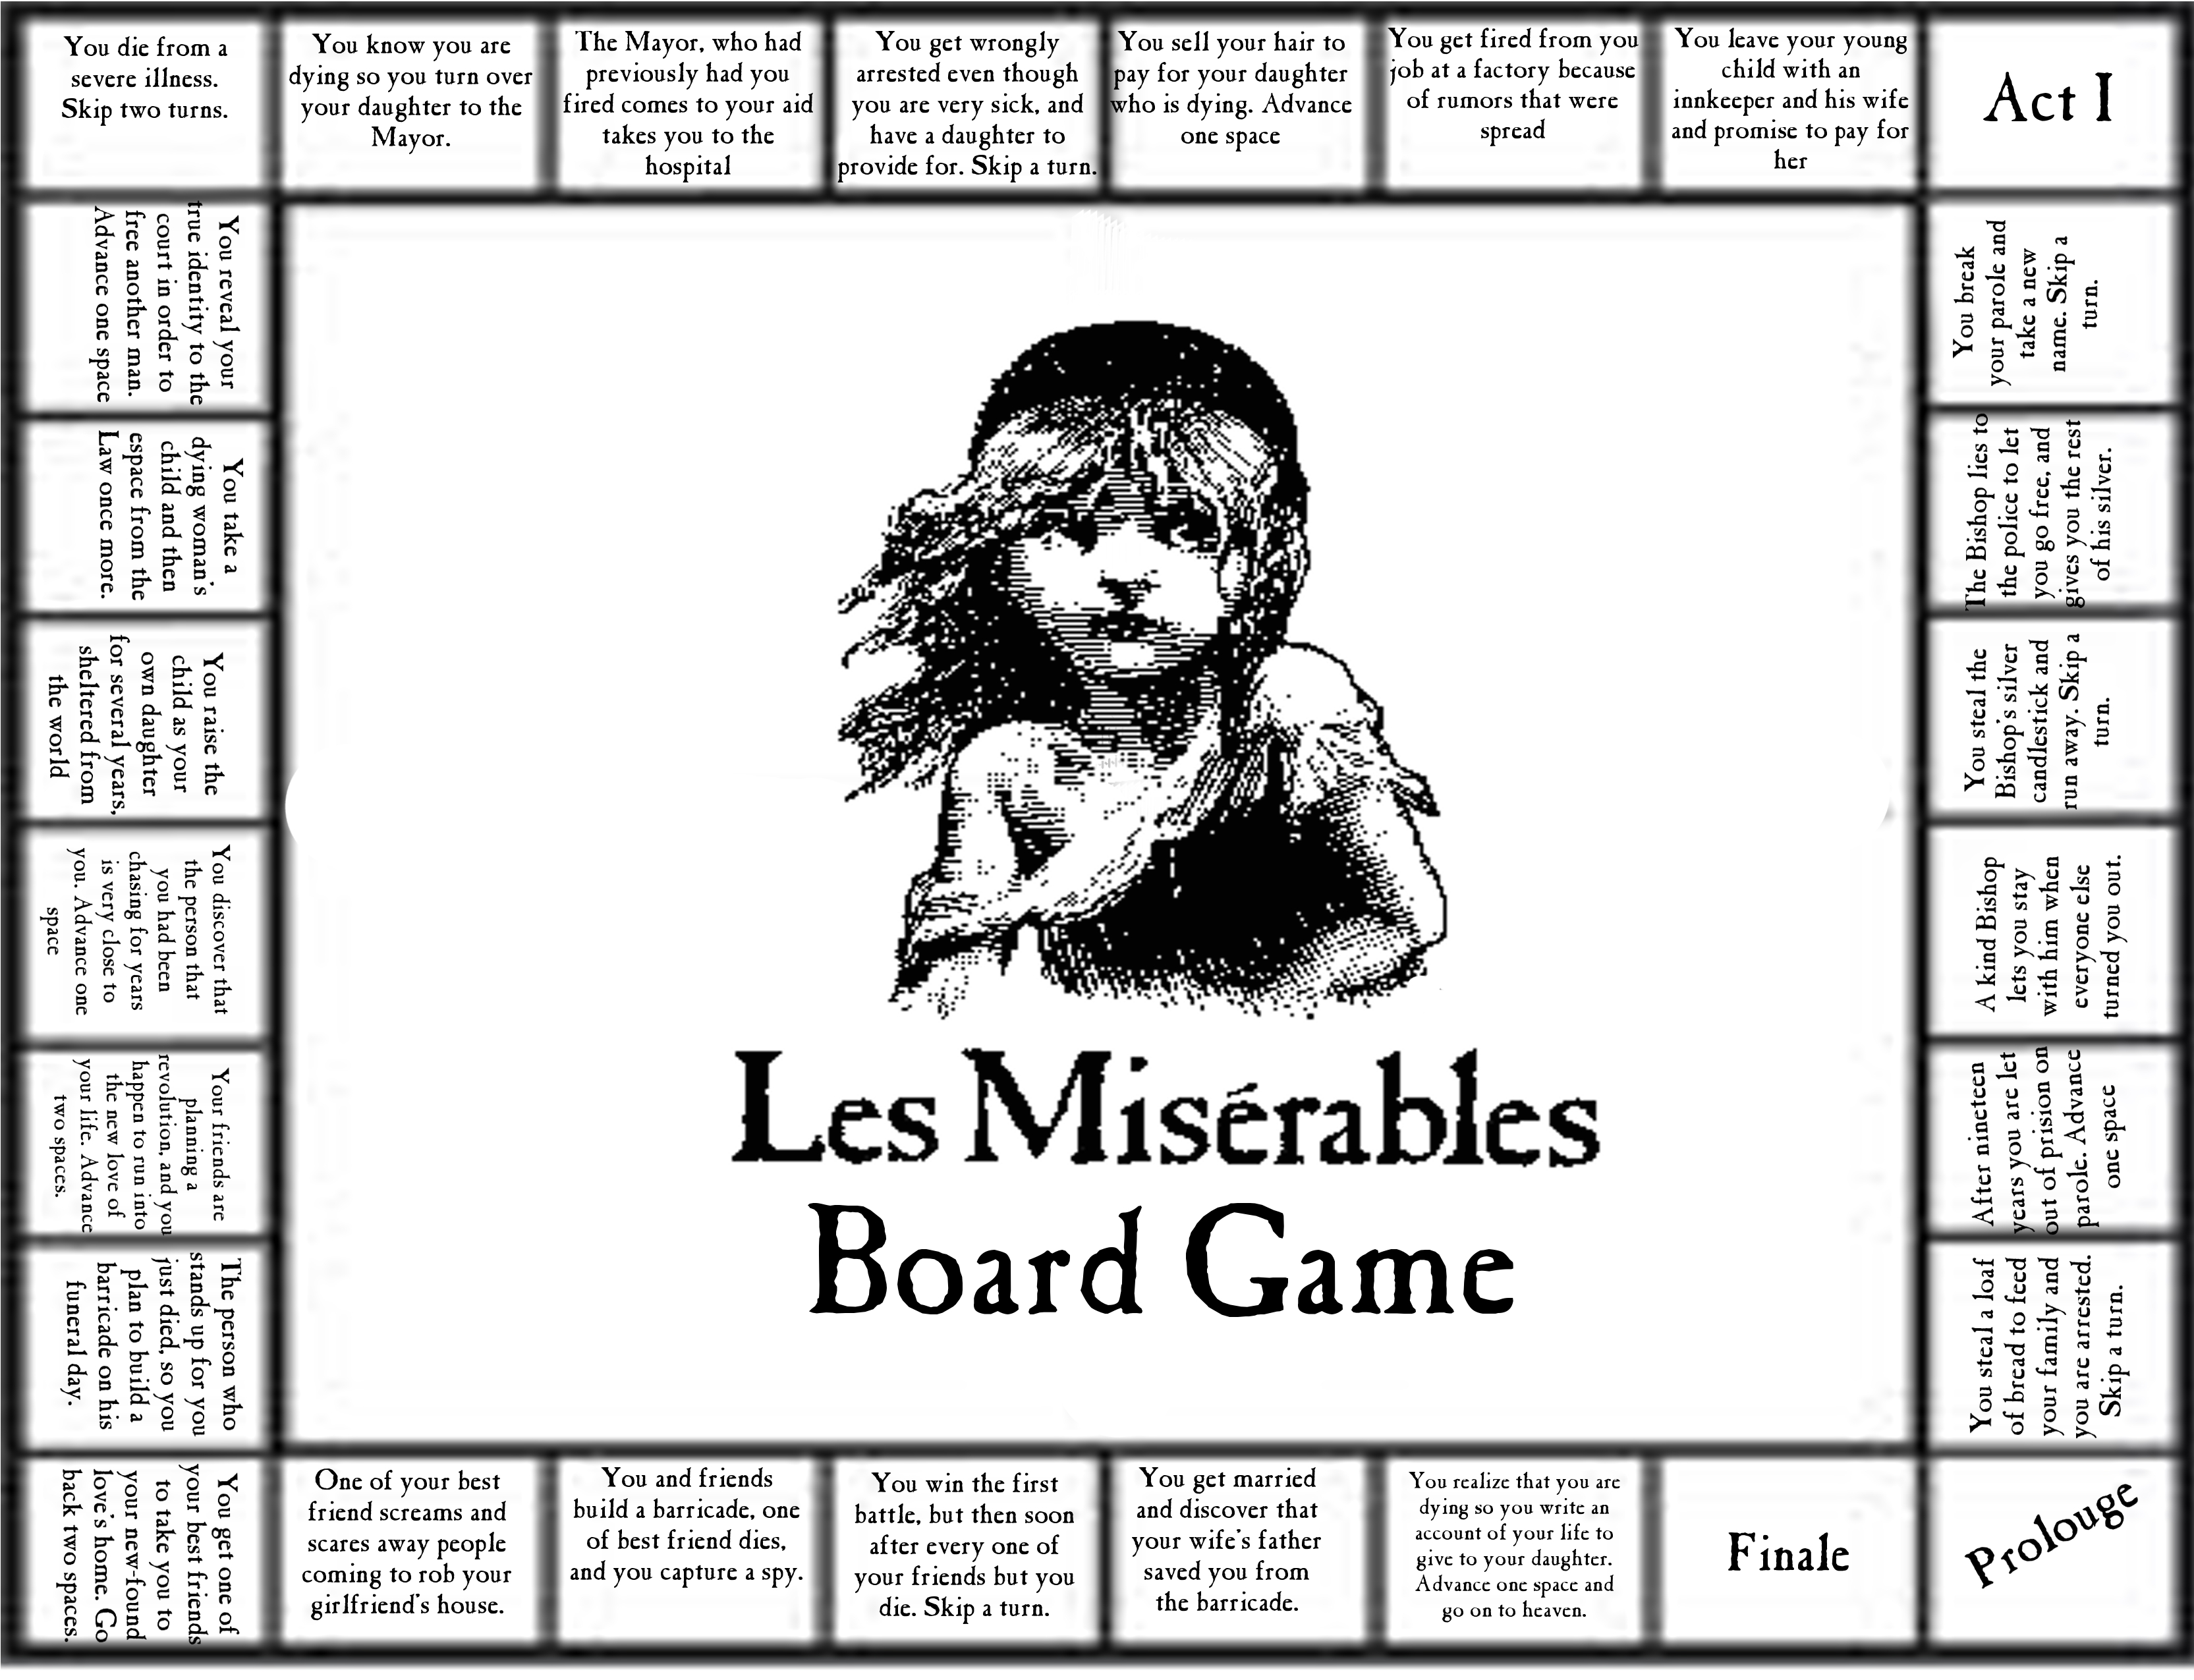 Les Miserables Board Game